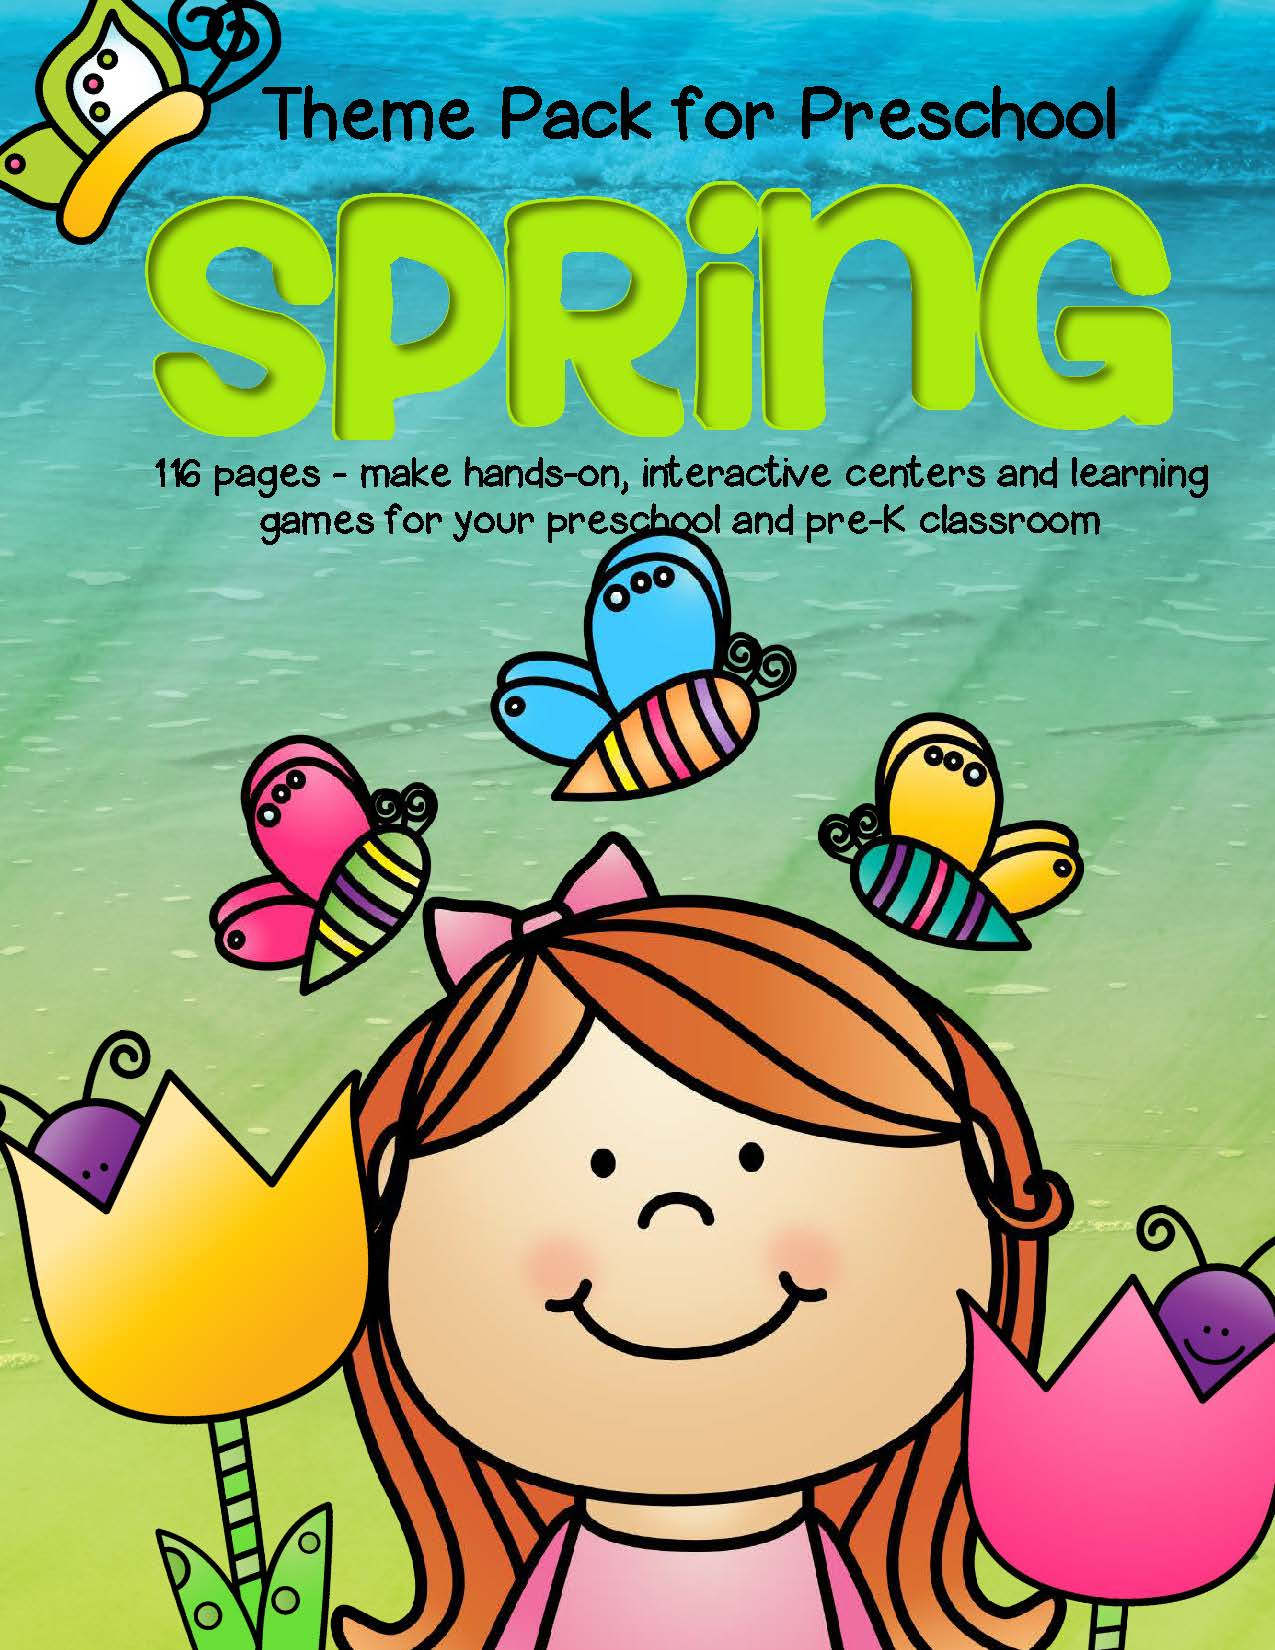 SPRING Theme Pack for Preschool